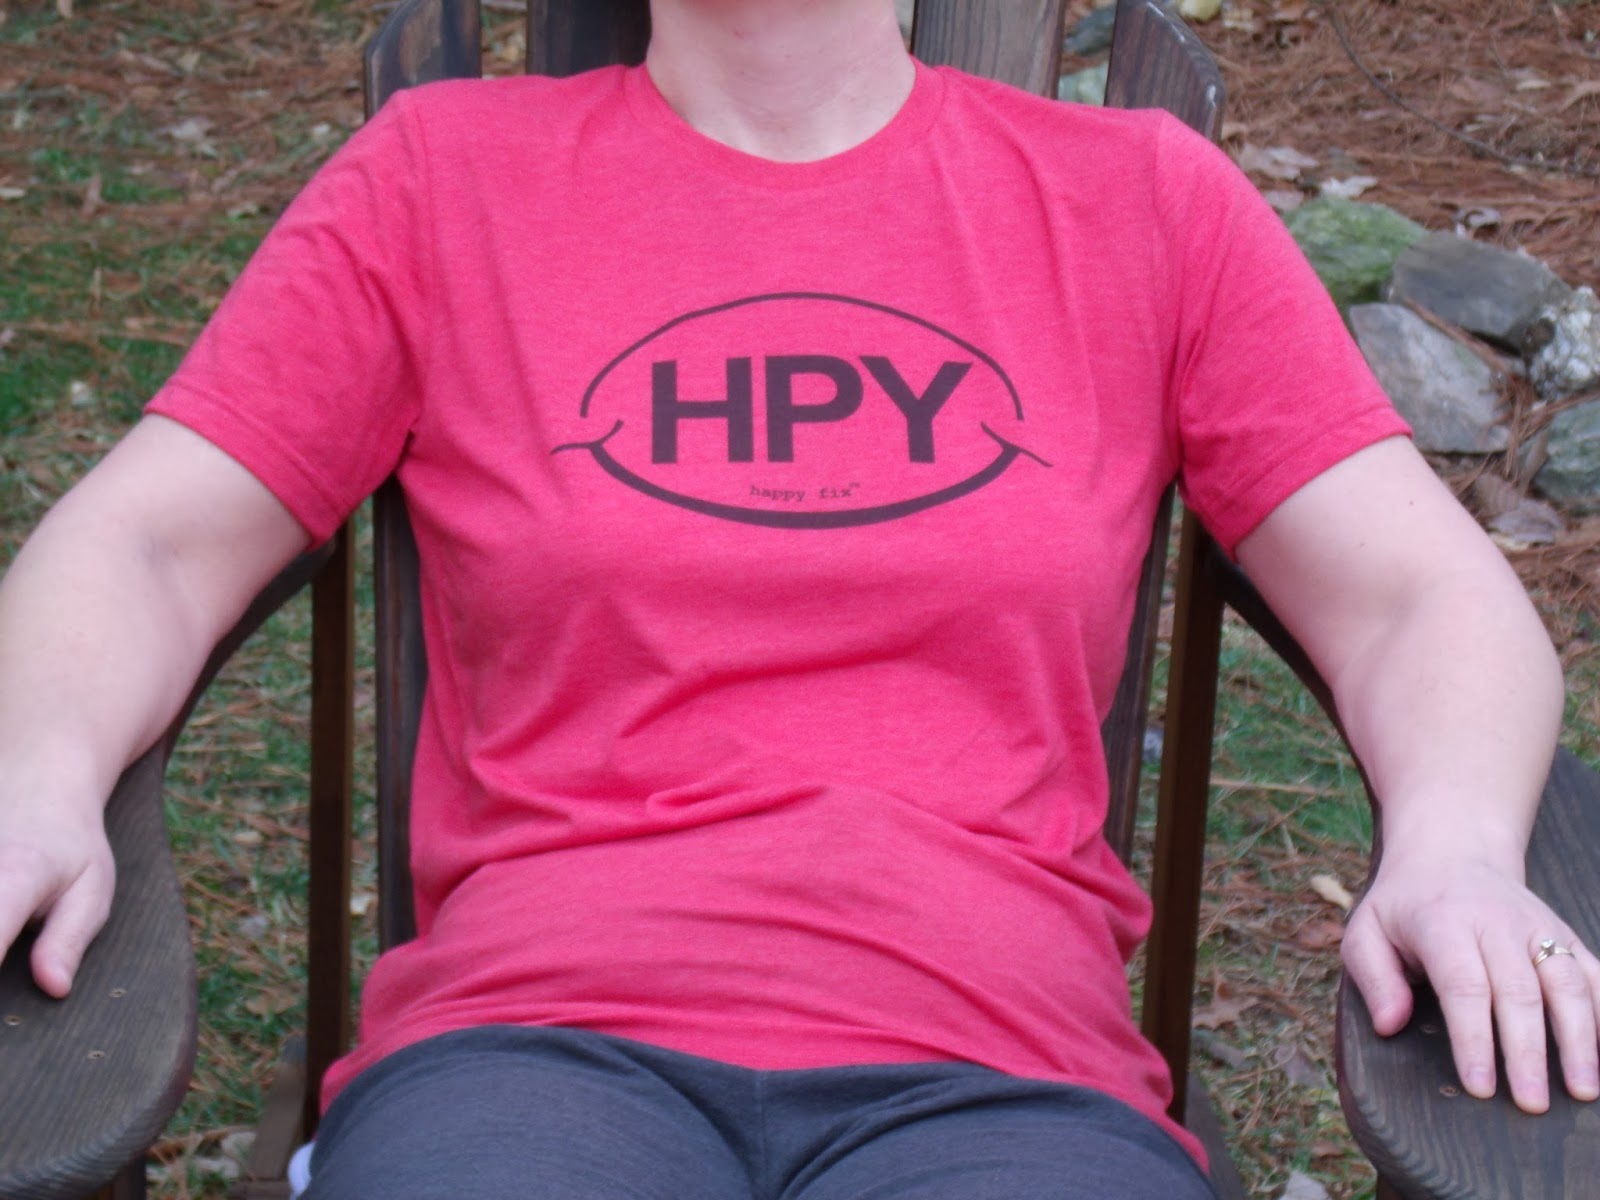 Get Your Happy Fix™ Made in USA Tee - $25